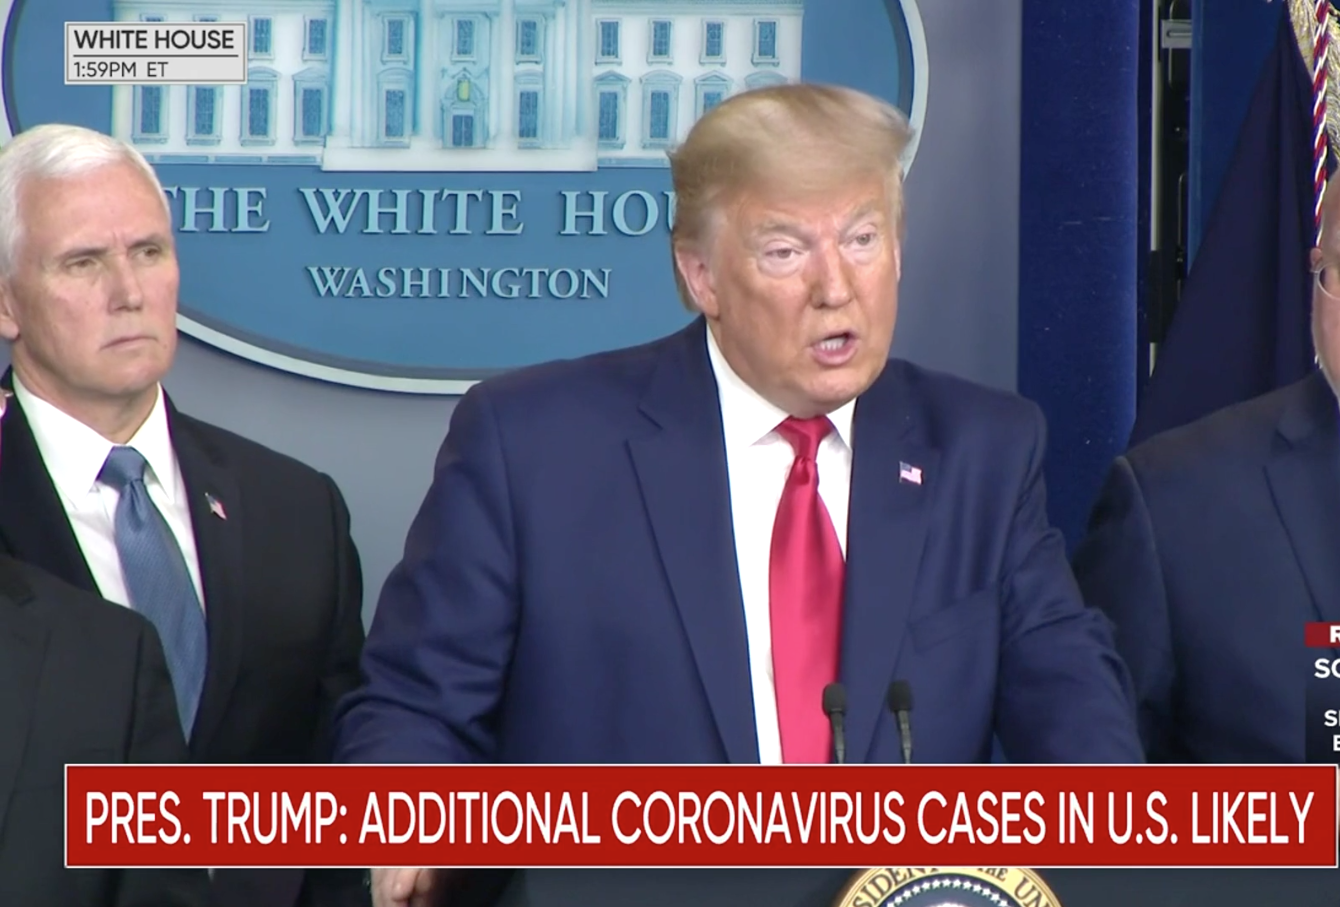 9 Times The Media Weaponized Coronavirus Coverage To Attack Trump